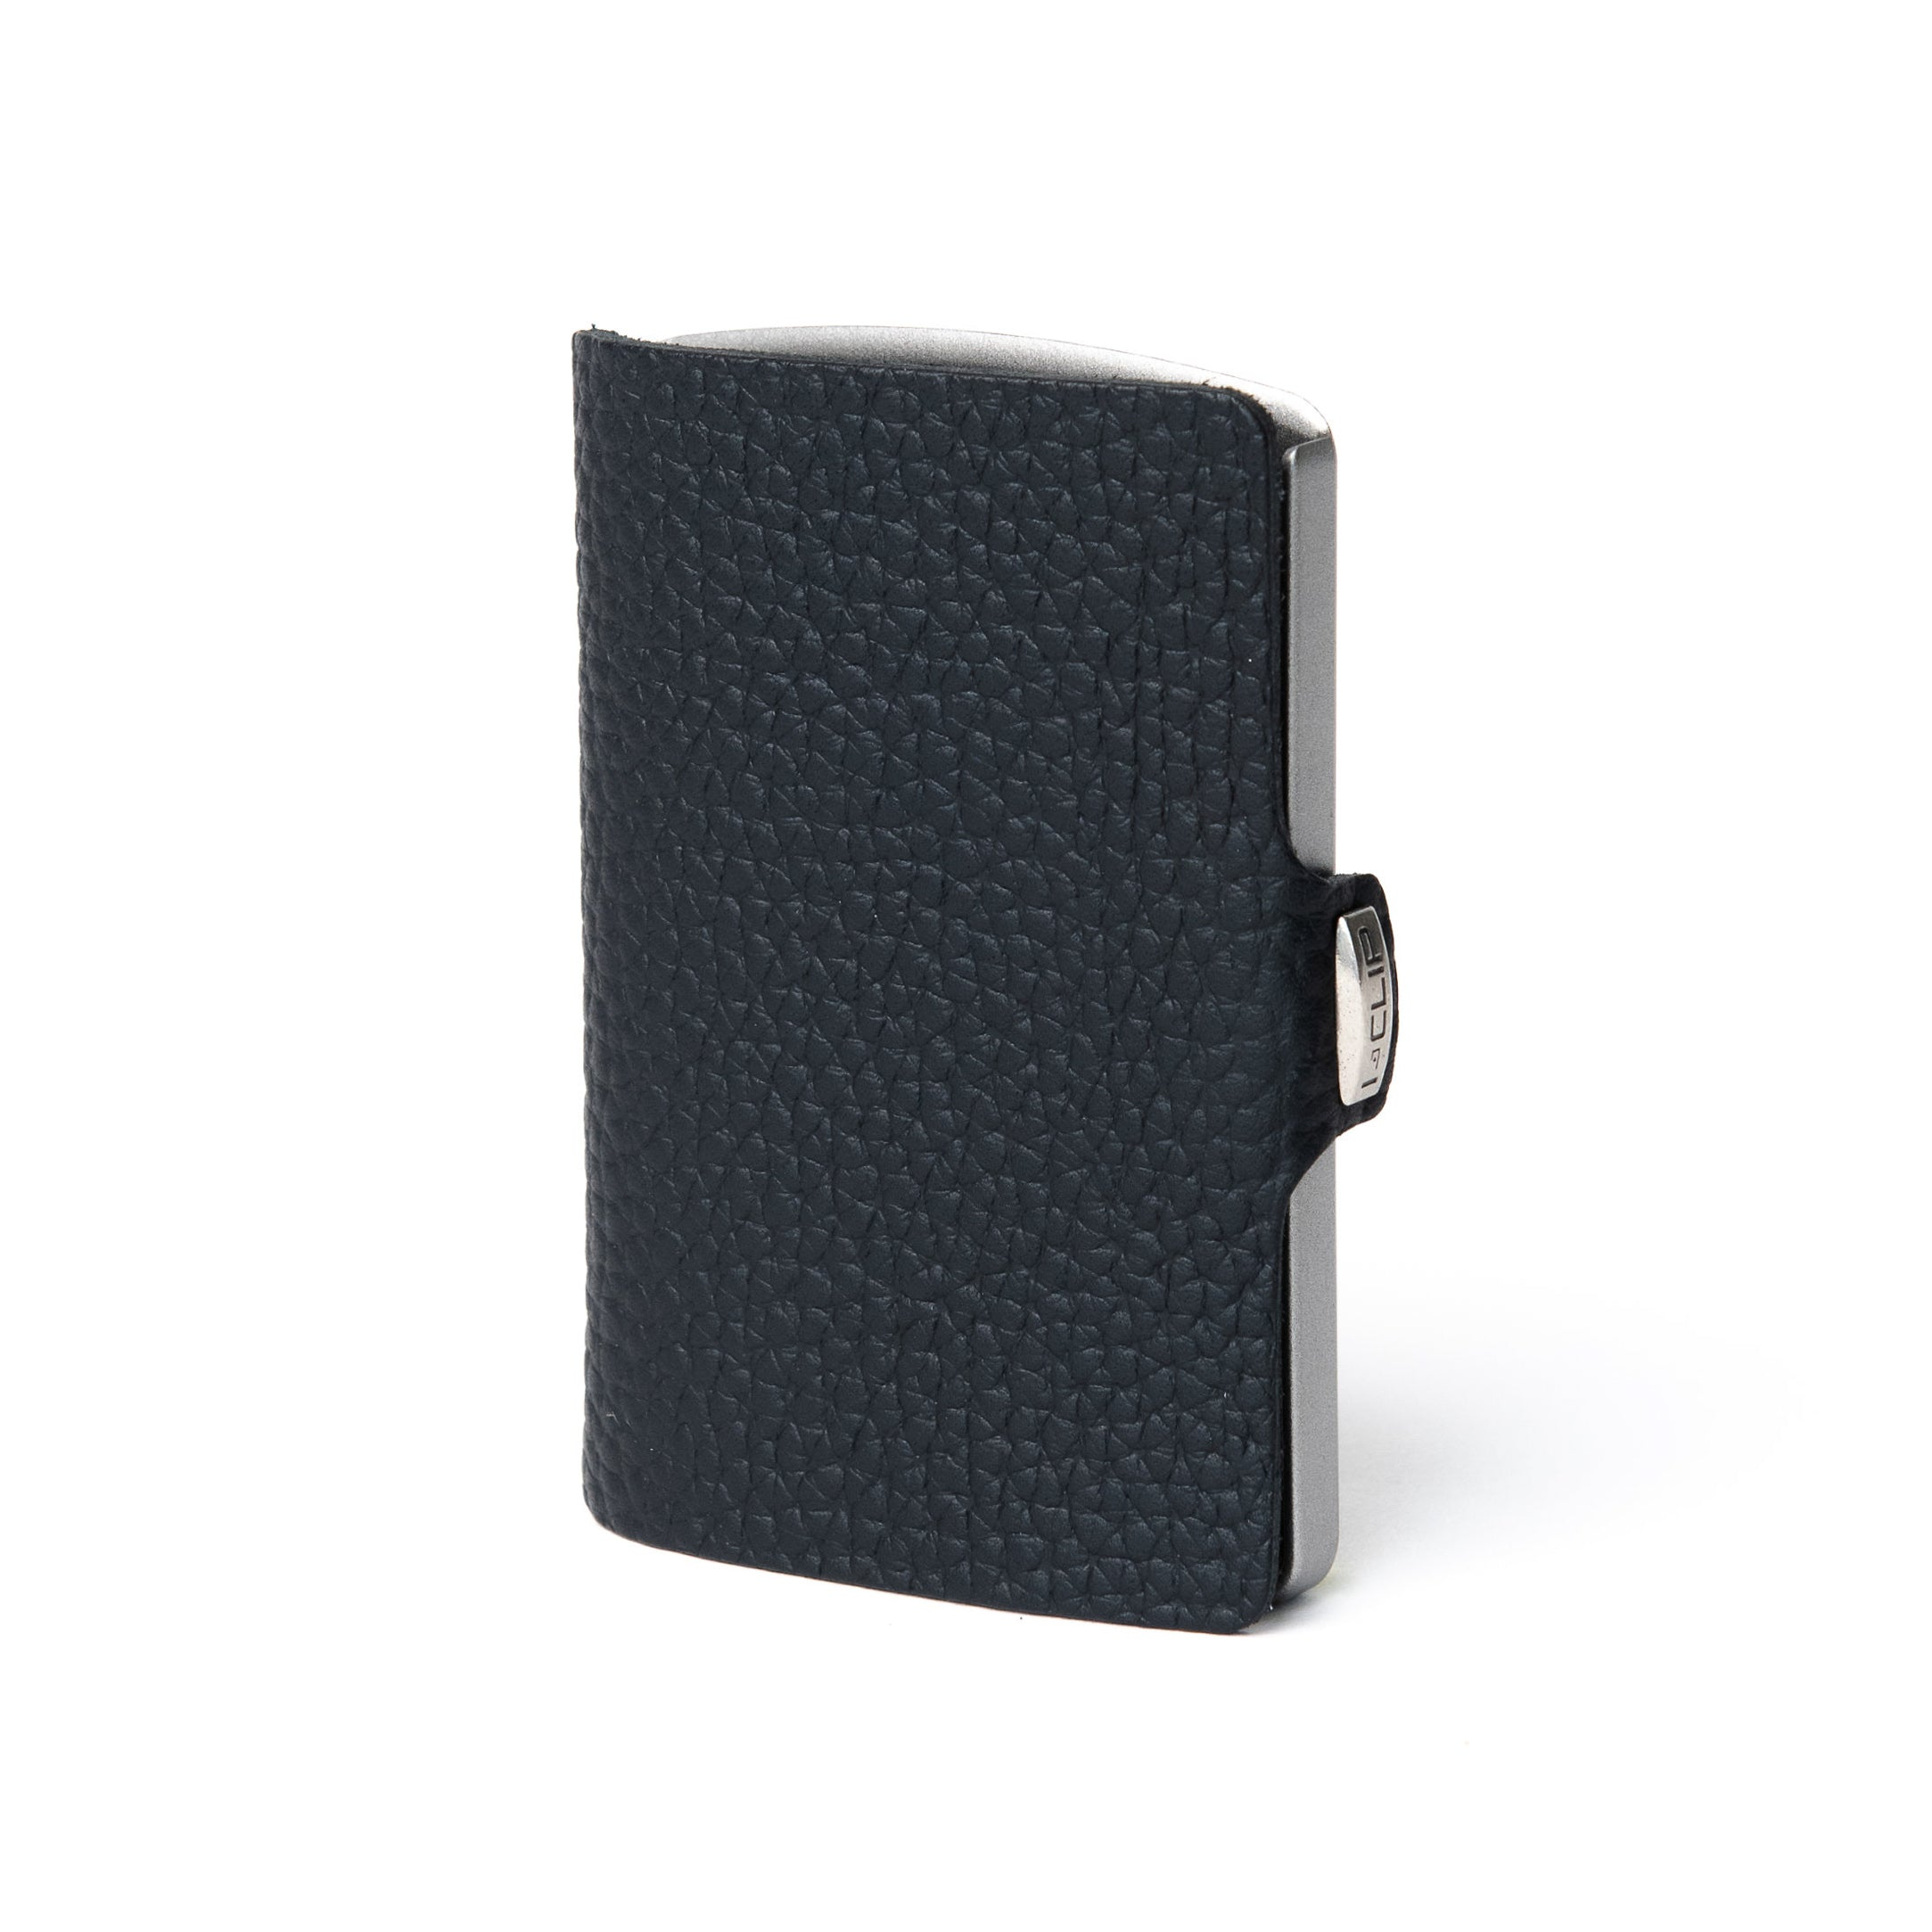 Full Grain Leather -  Black / Metallic Gray Frame - I-CLIP